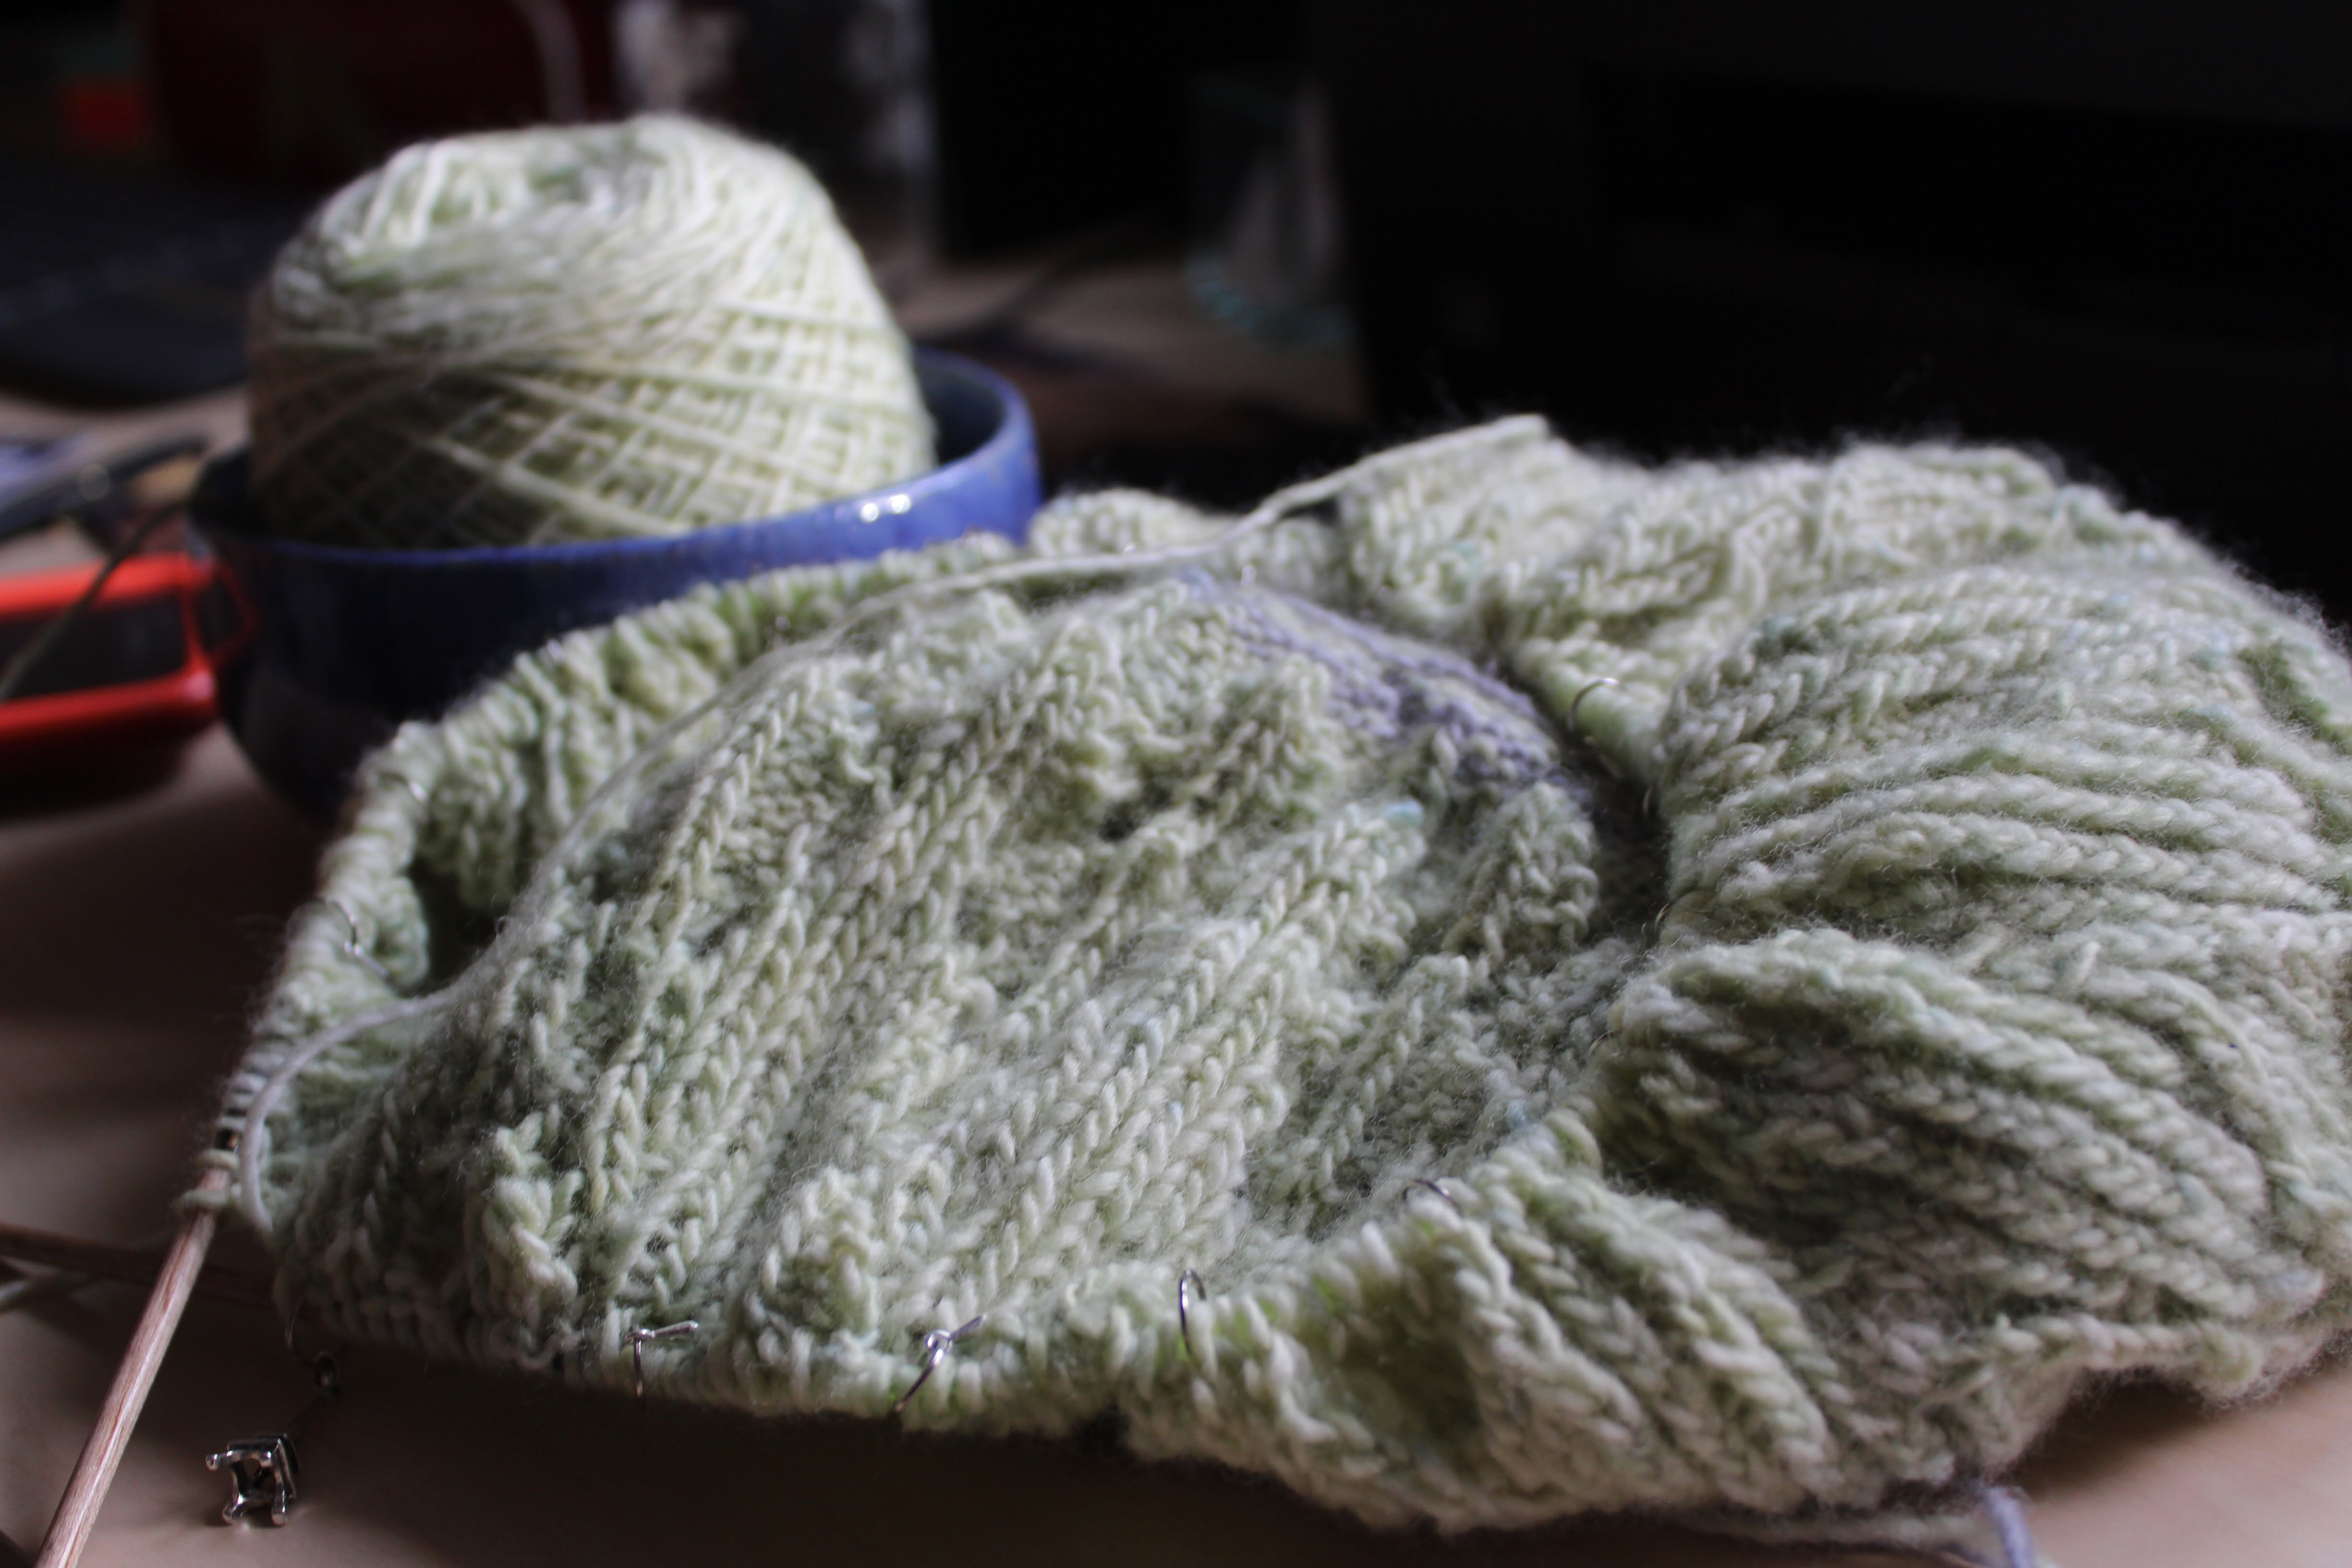 interview - Knitting with her own yarn - this is a Zweig sweater in progress